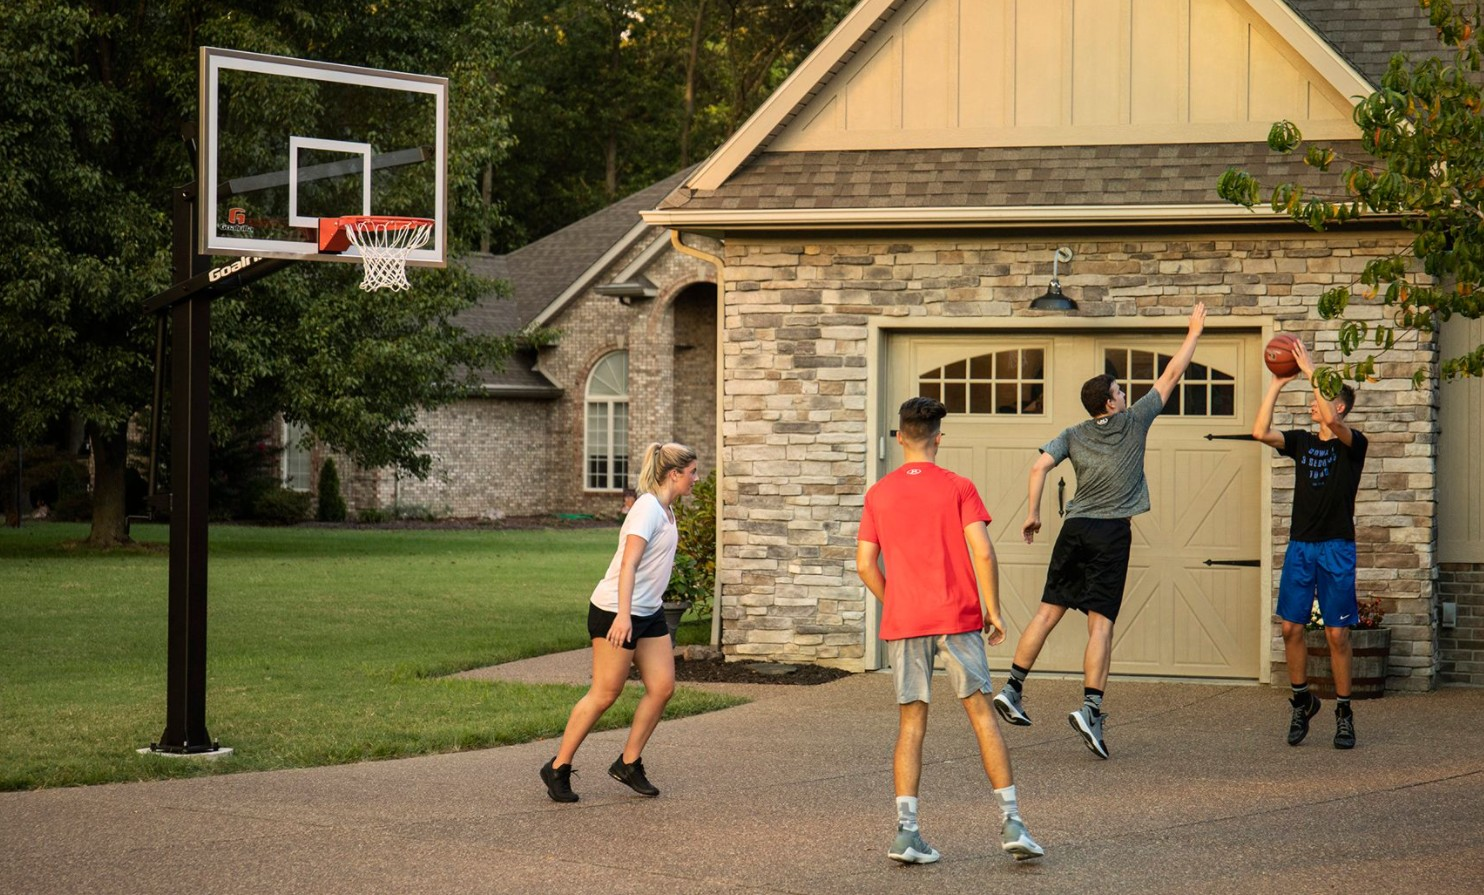 Choosing the Best Home Basketball Hoop for Your Home